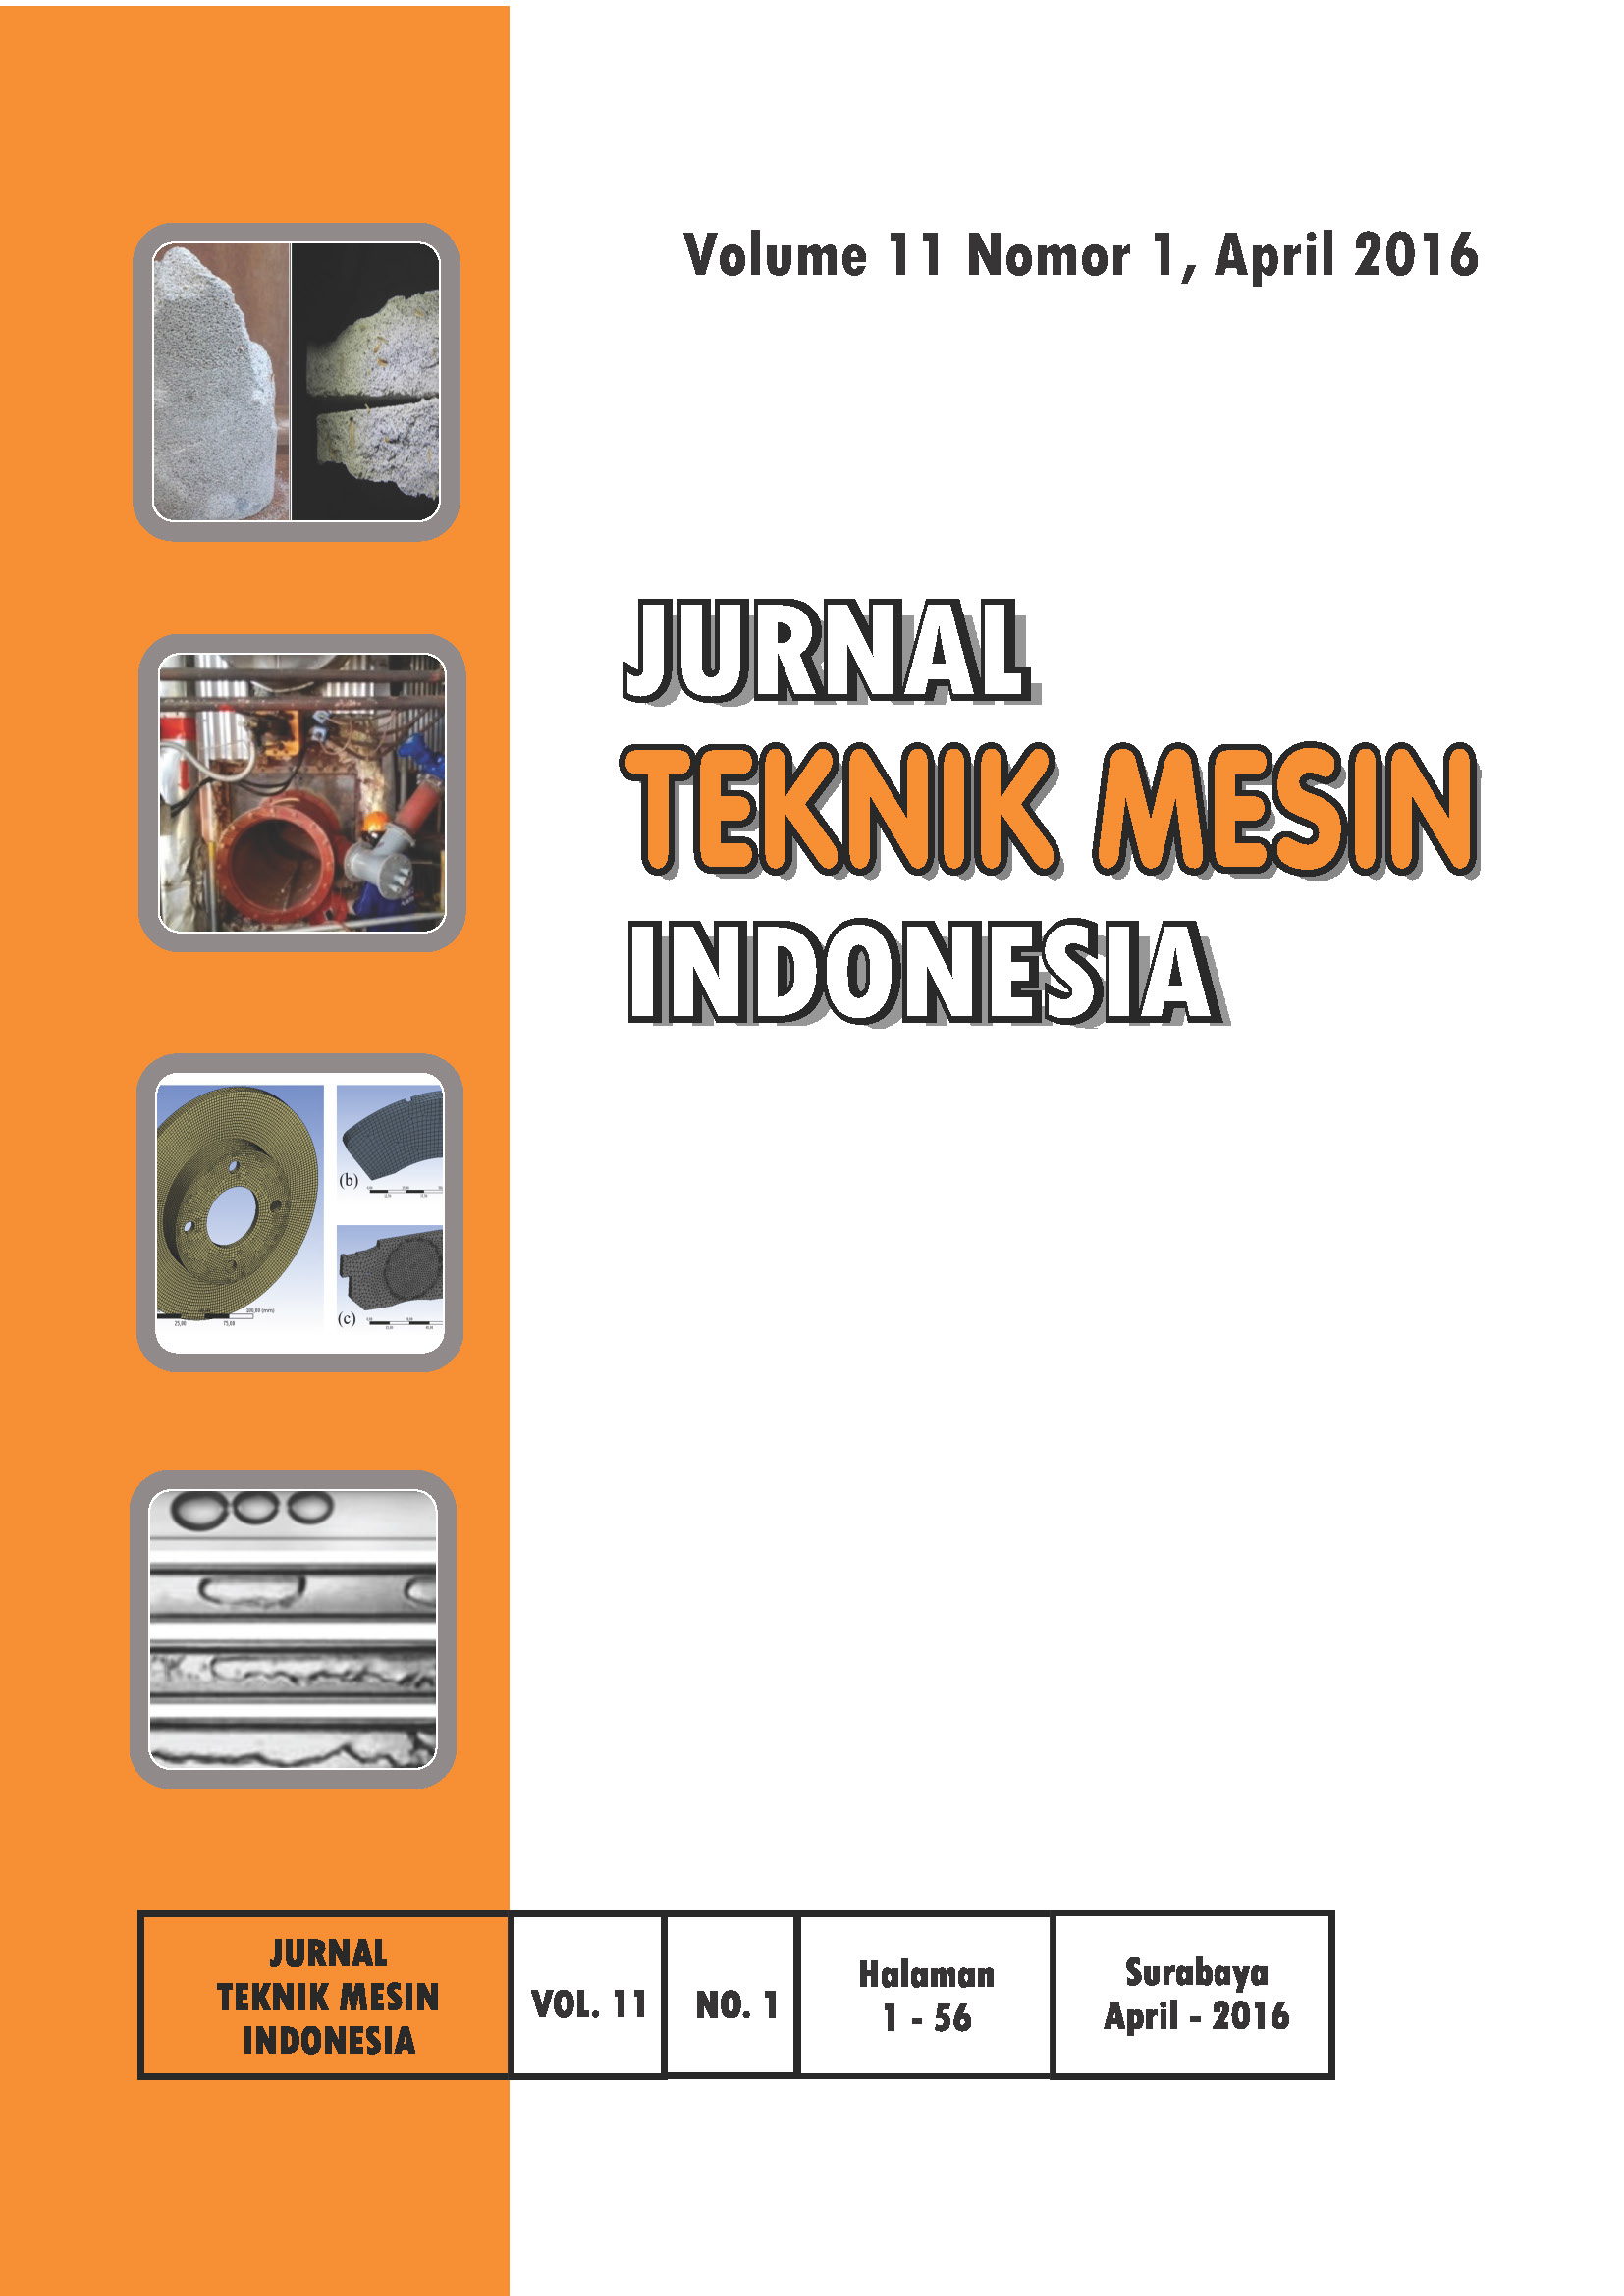 Jurnal Teknik Mesin Indonesia (JTMI) Edisi April 2016